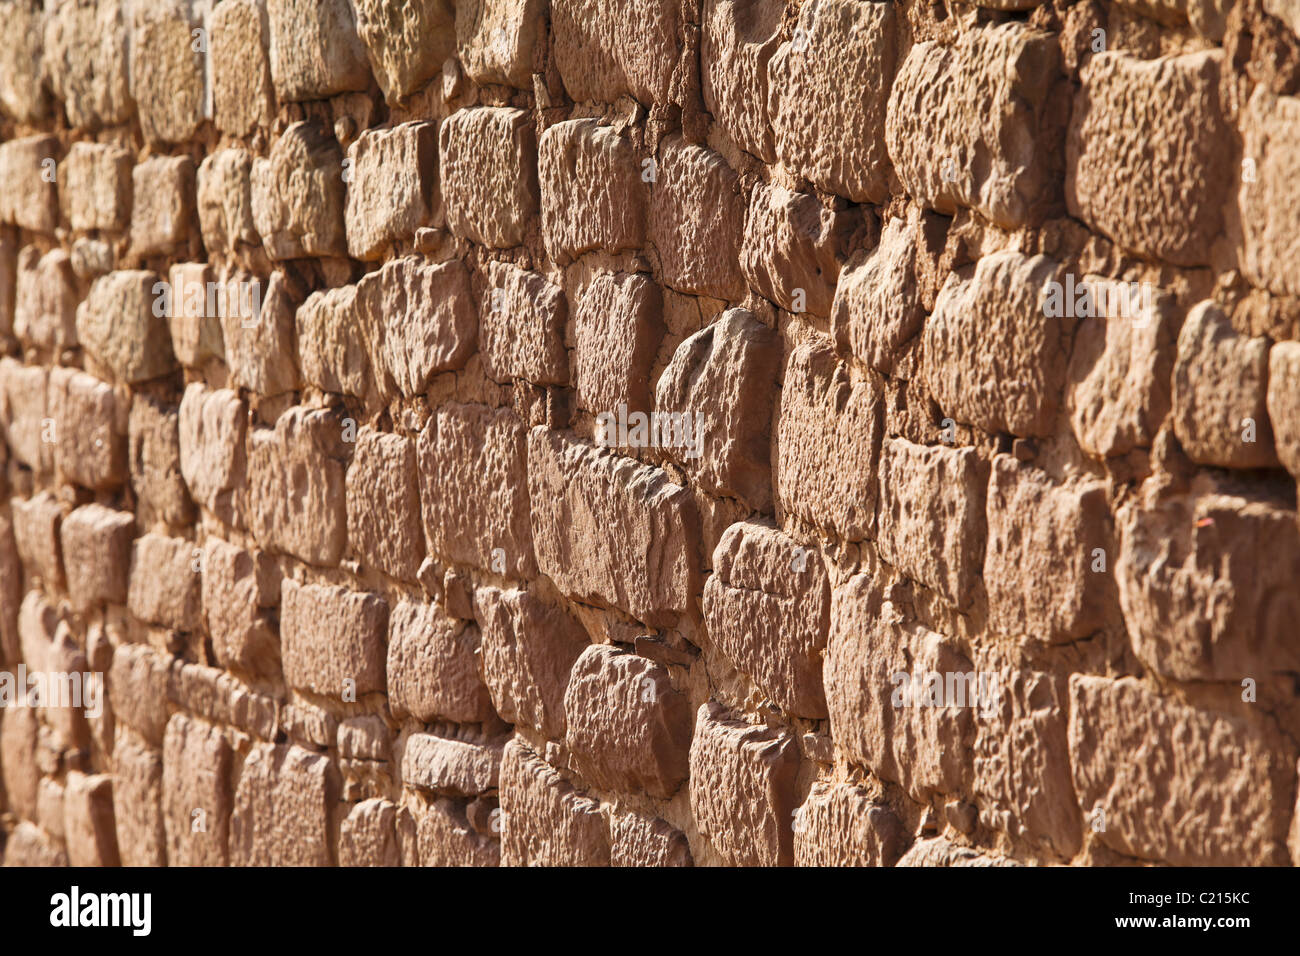 A detail view of an Adobe mortar wall on the Sun Temple in Mesa Verde National Park, USA. - Stock Image